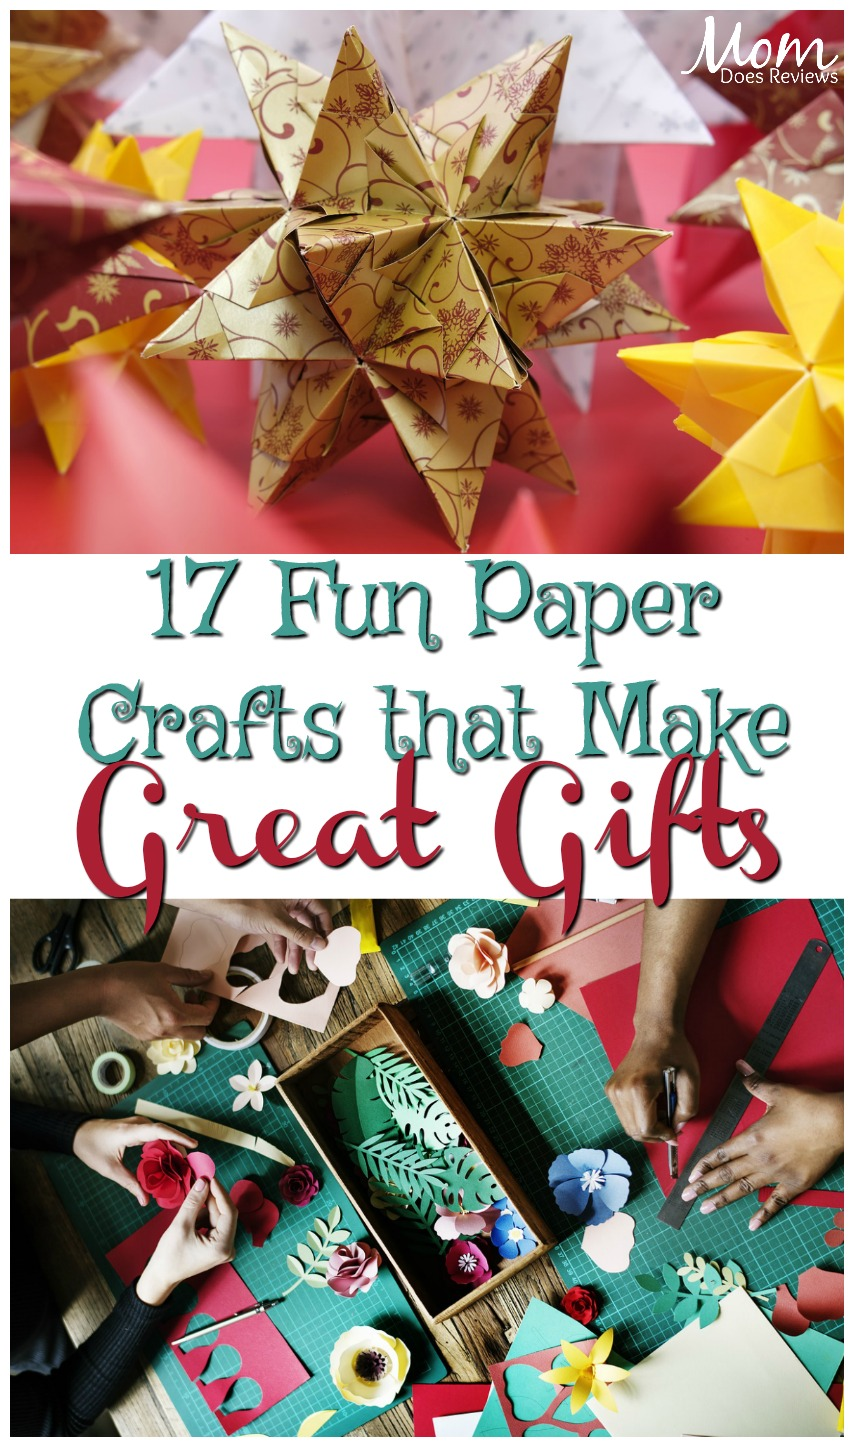 17 Fun Paper Craft Ideas that Make Great Gifts  #crafts #papercrafts #giftideas